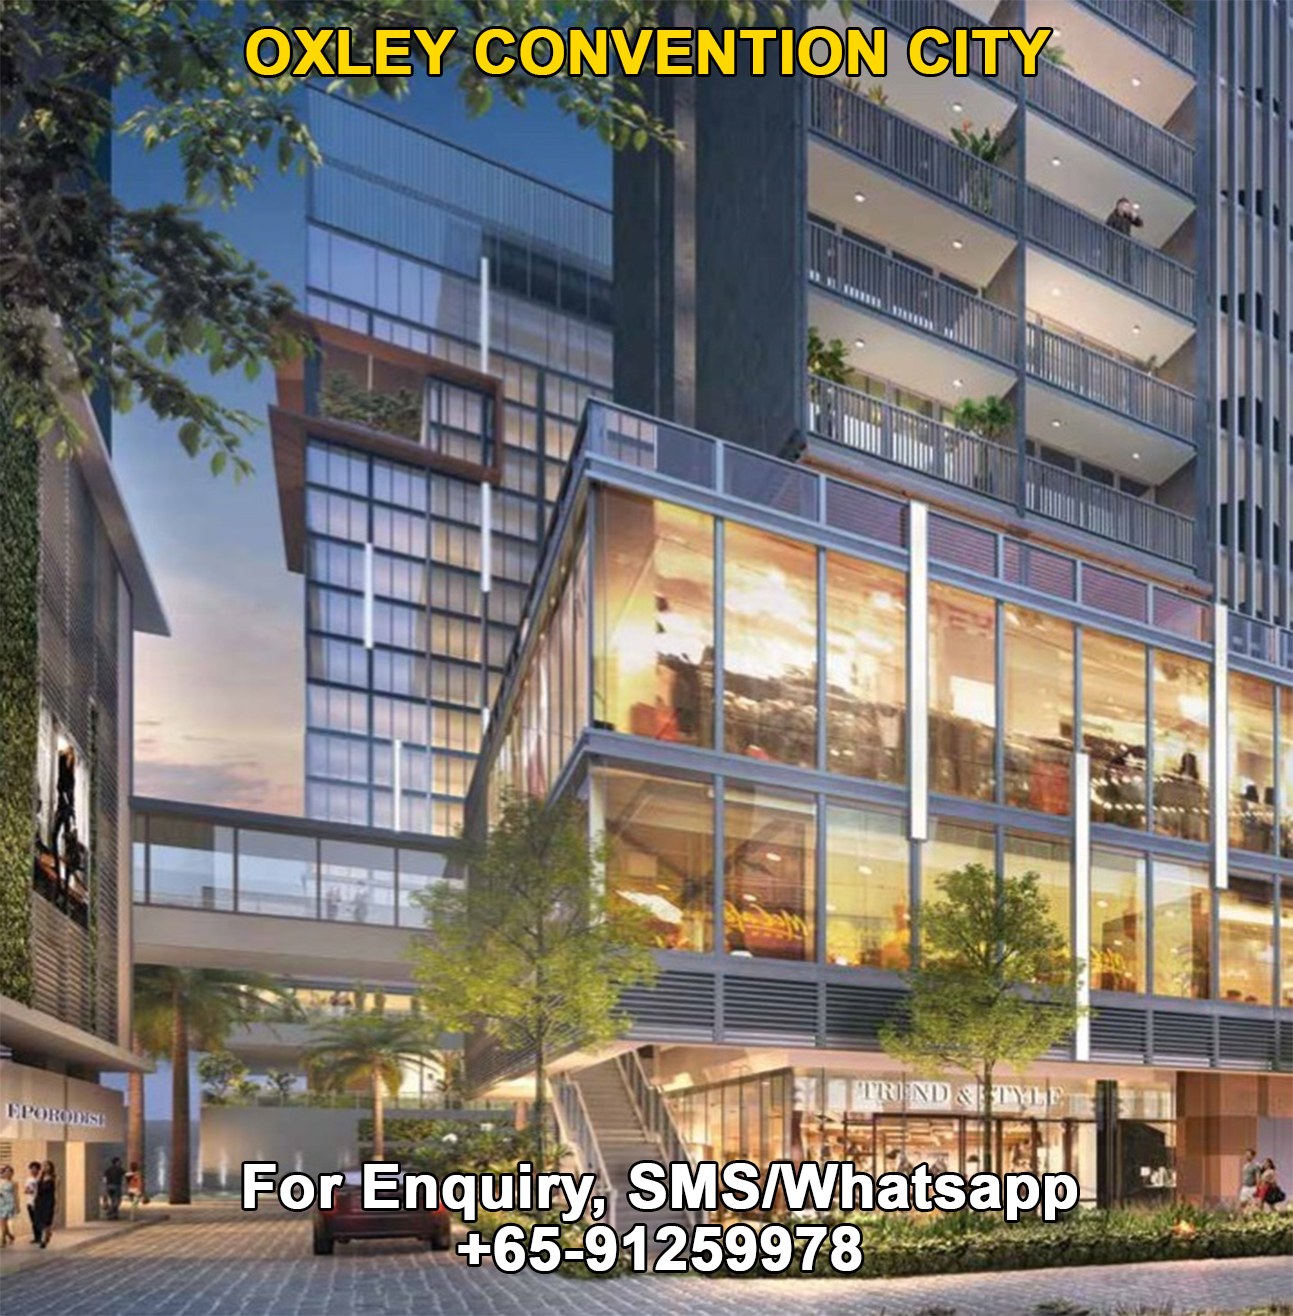 Oxley Convention City Offices